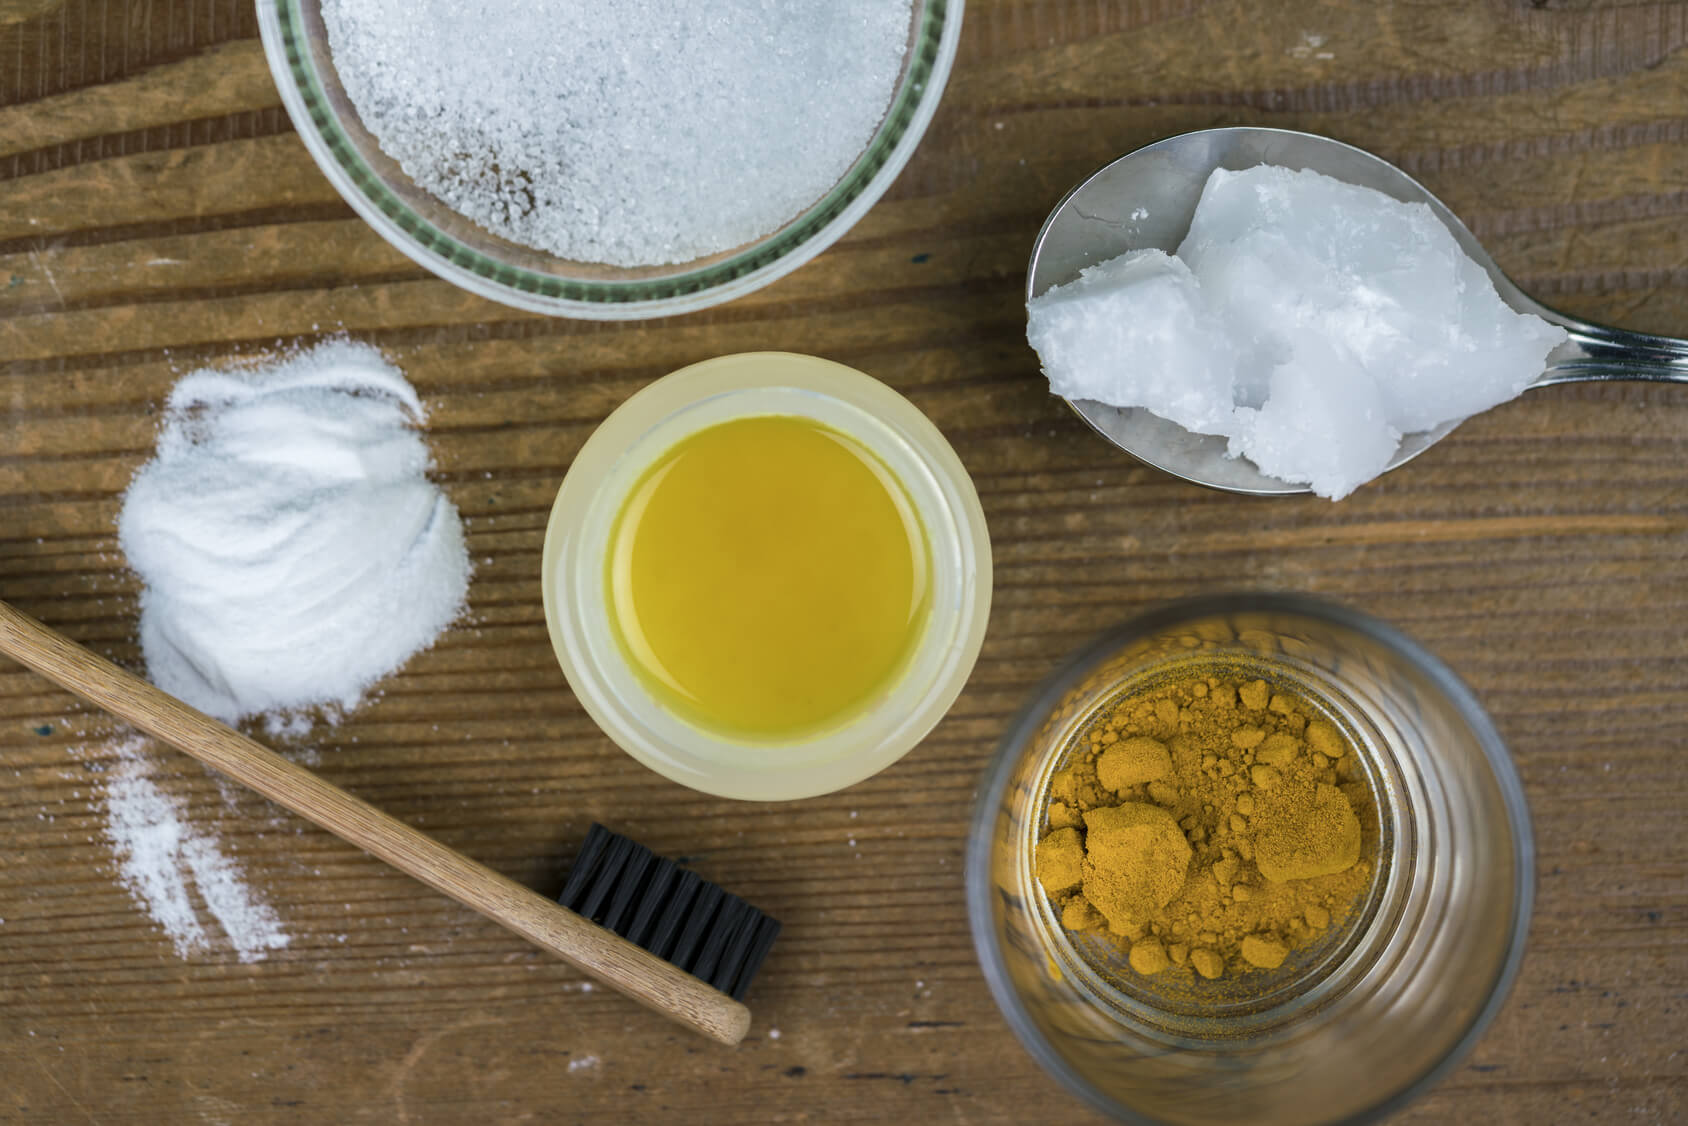 Homemade toothpaste with all-natural ingredients is better for long-term health.